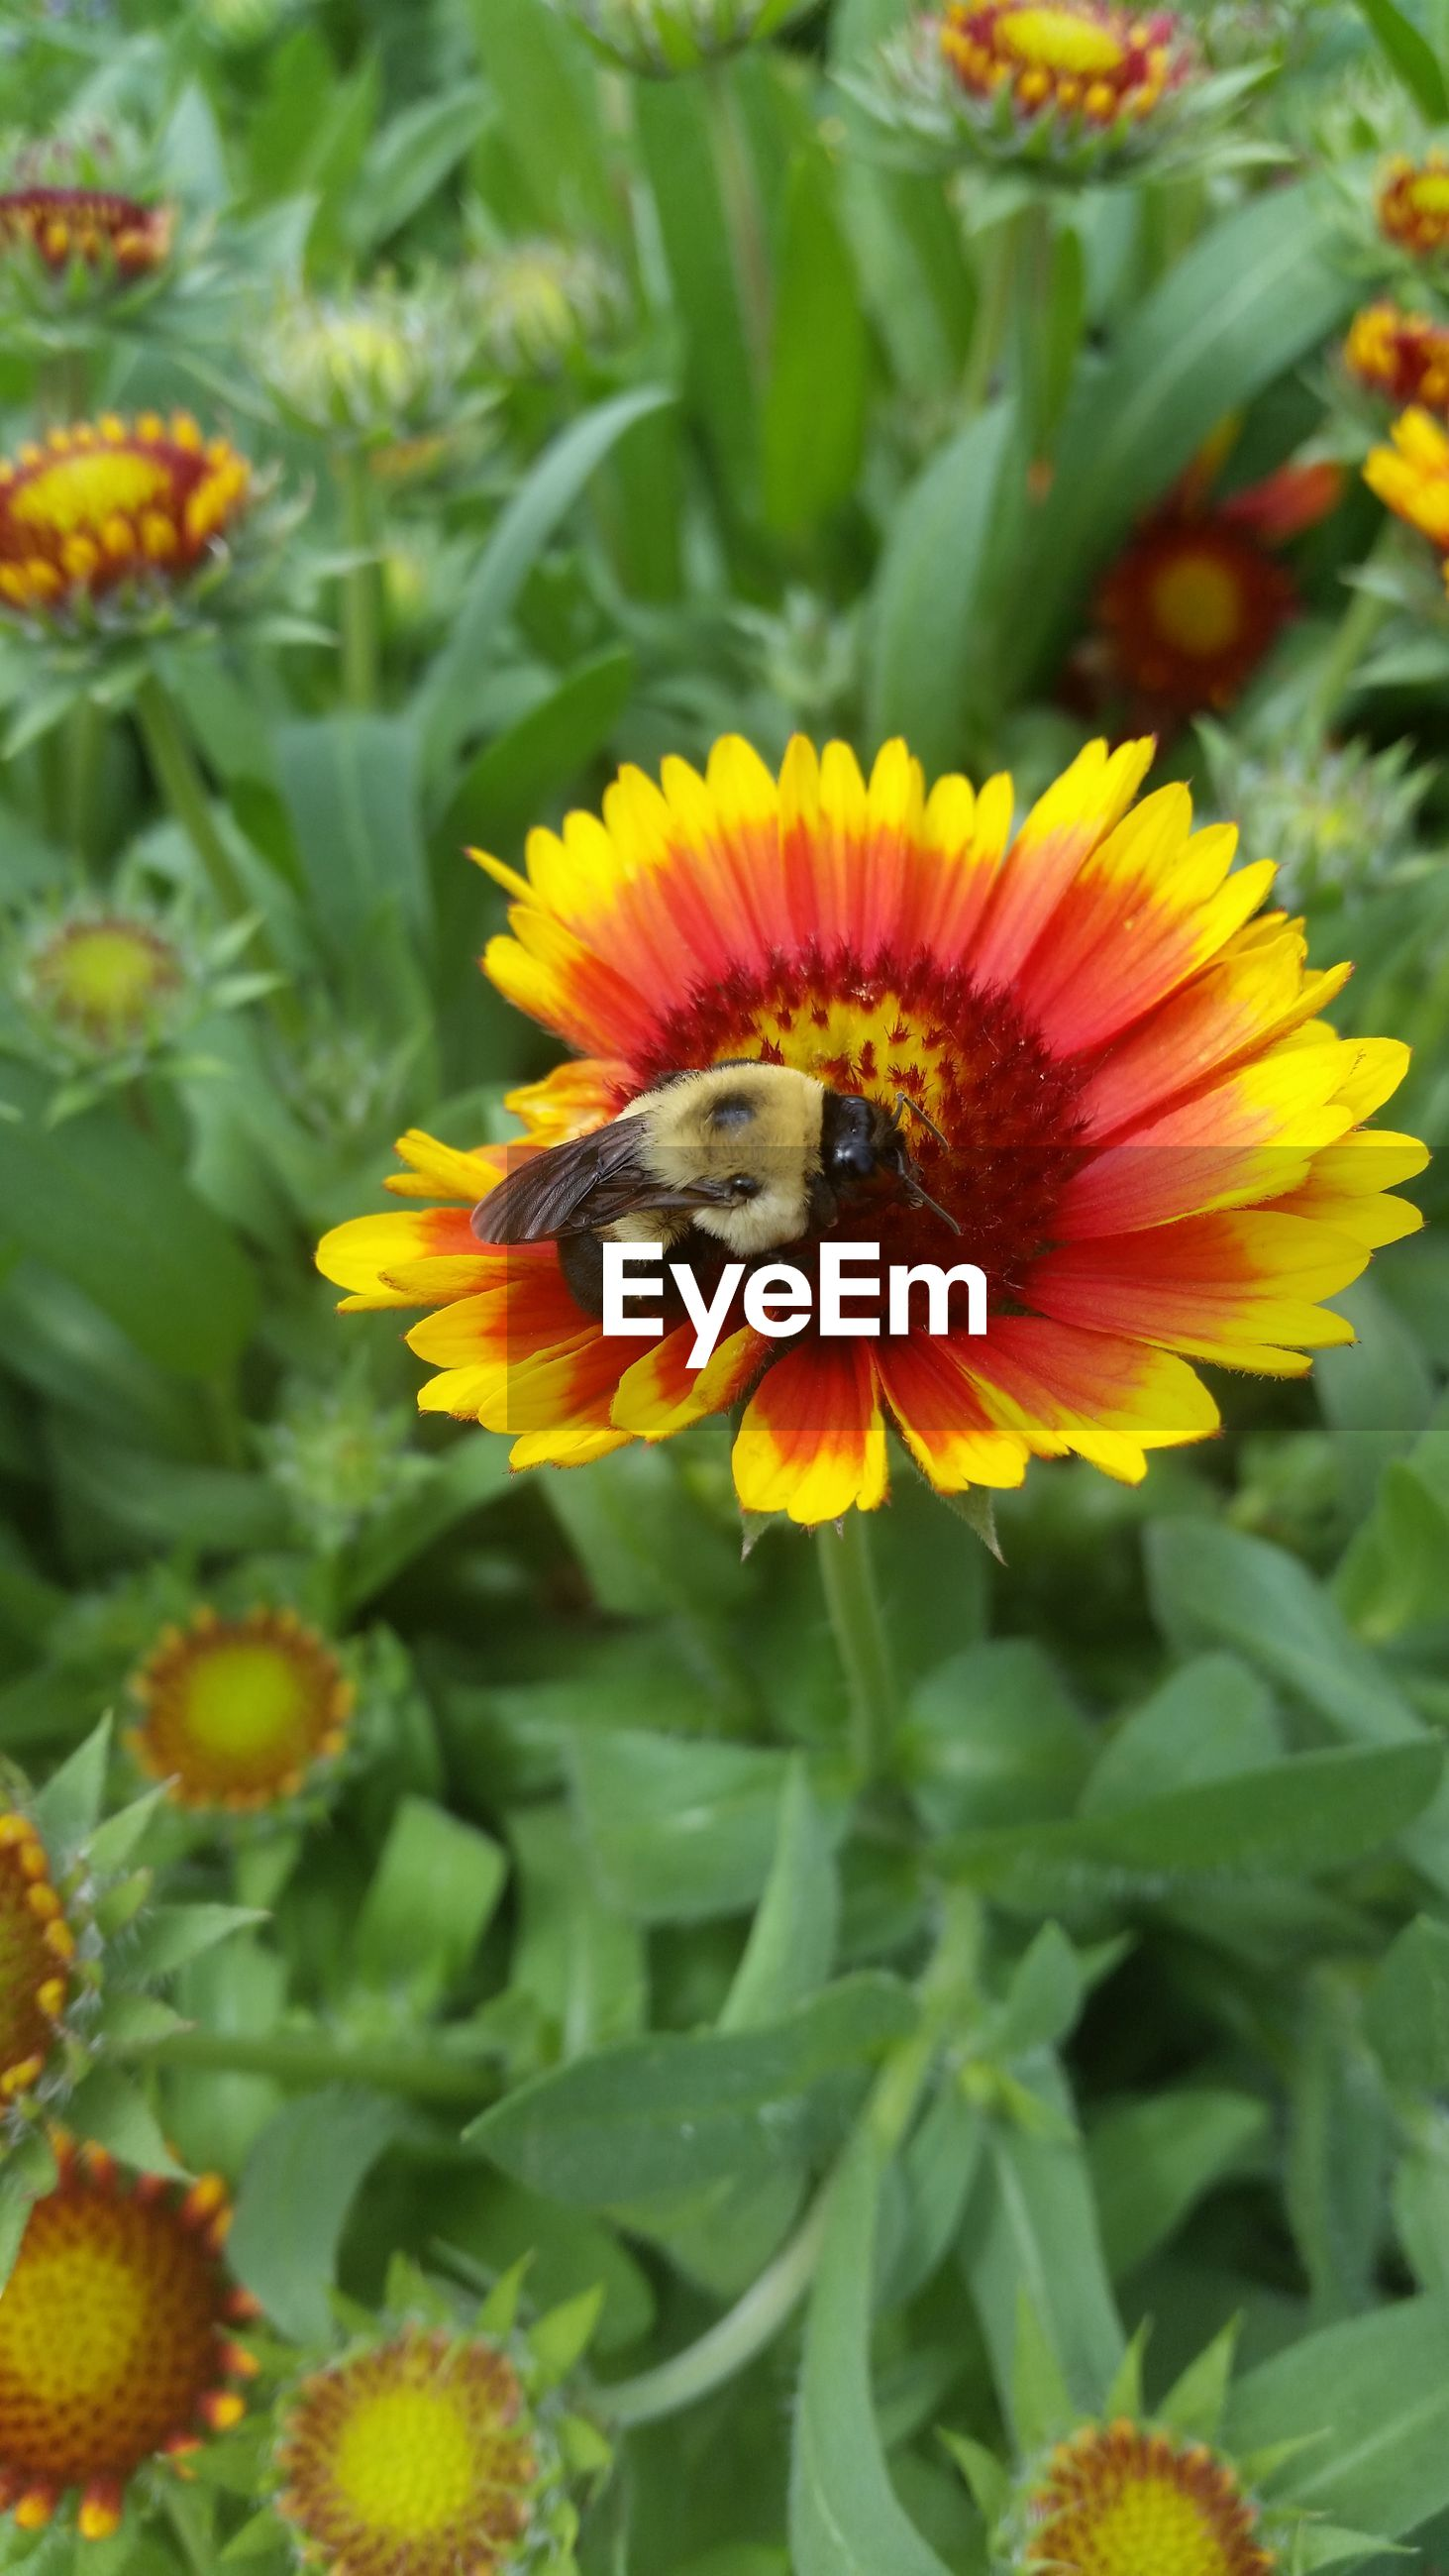 flower, insect, animal themes, animals in the wild, petal, freshness, one animal, wildlife, flower head, fragility, pollination, yellow, growth, beauty in nature, symbiotic relationship, plant, pollen, blooming, close-up, focus on foreground